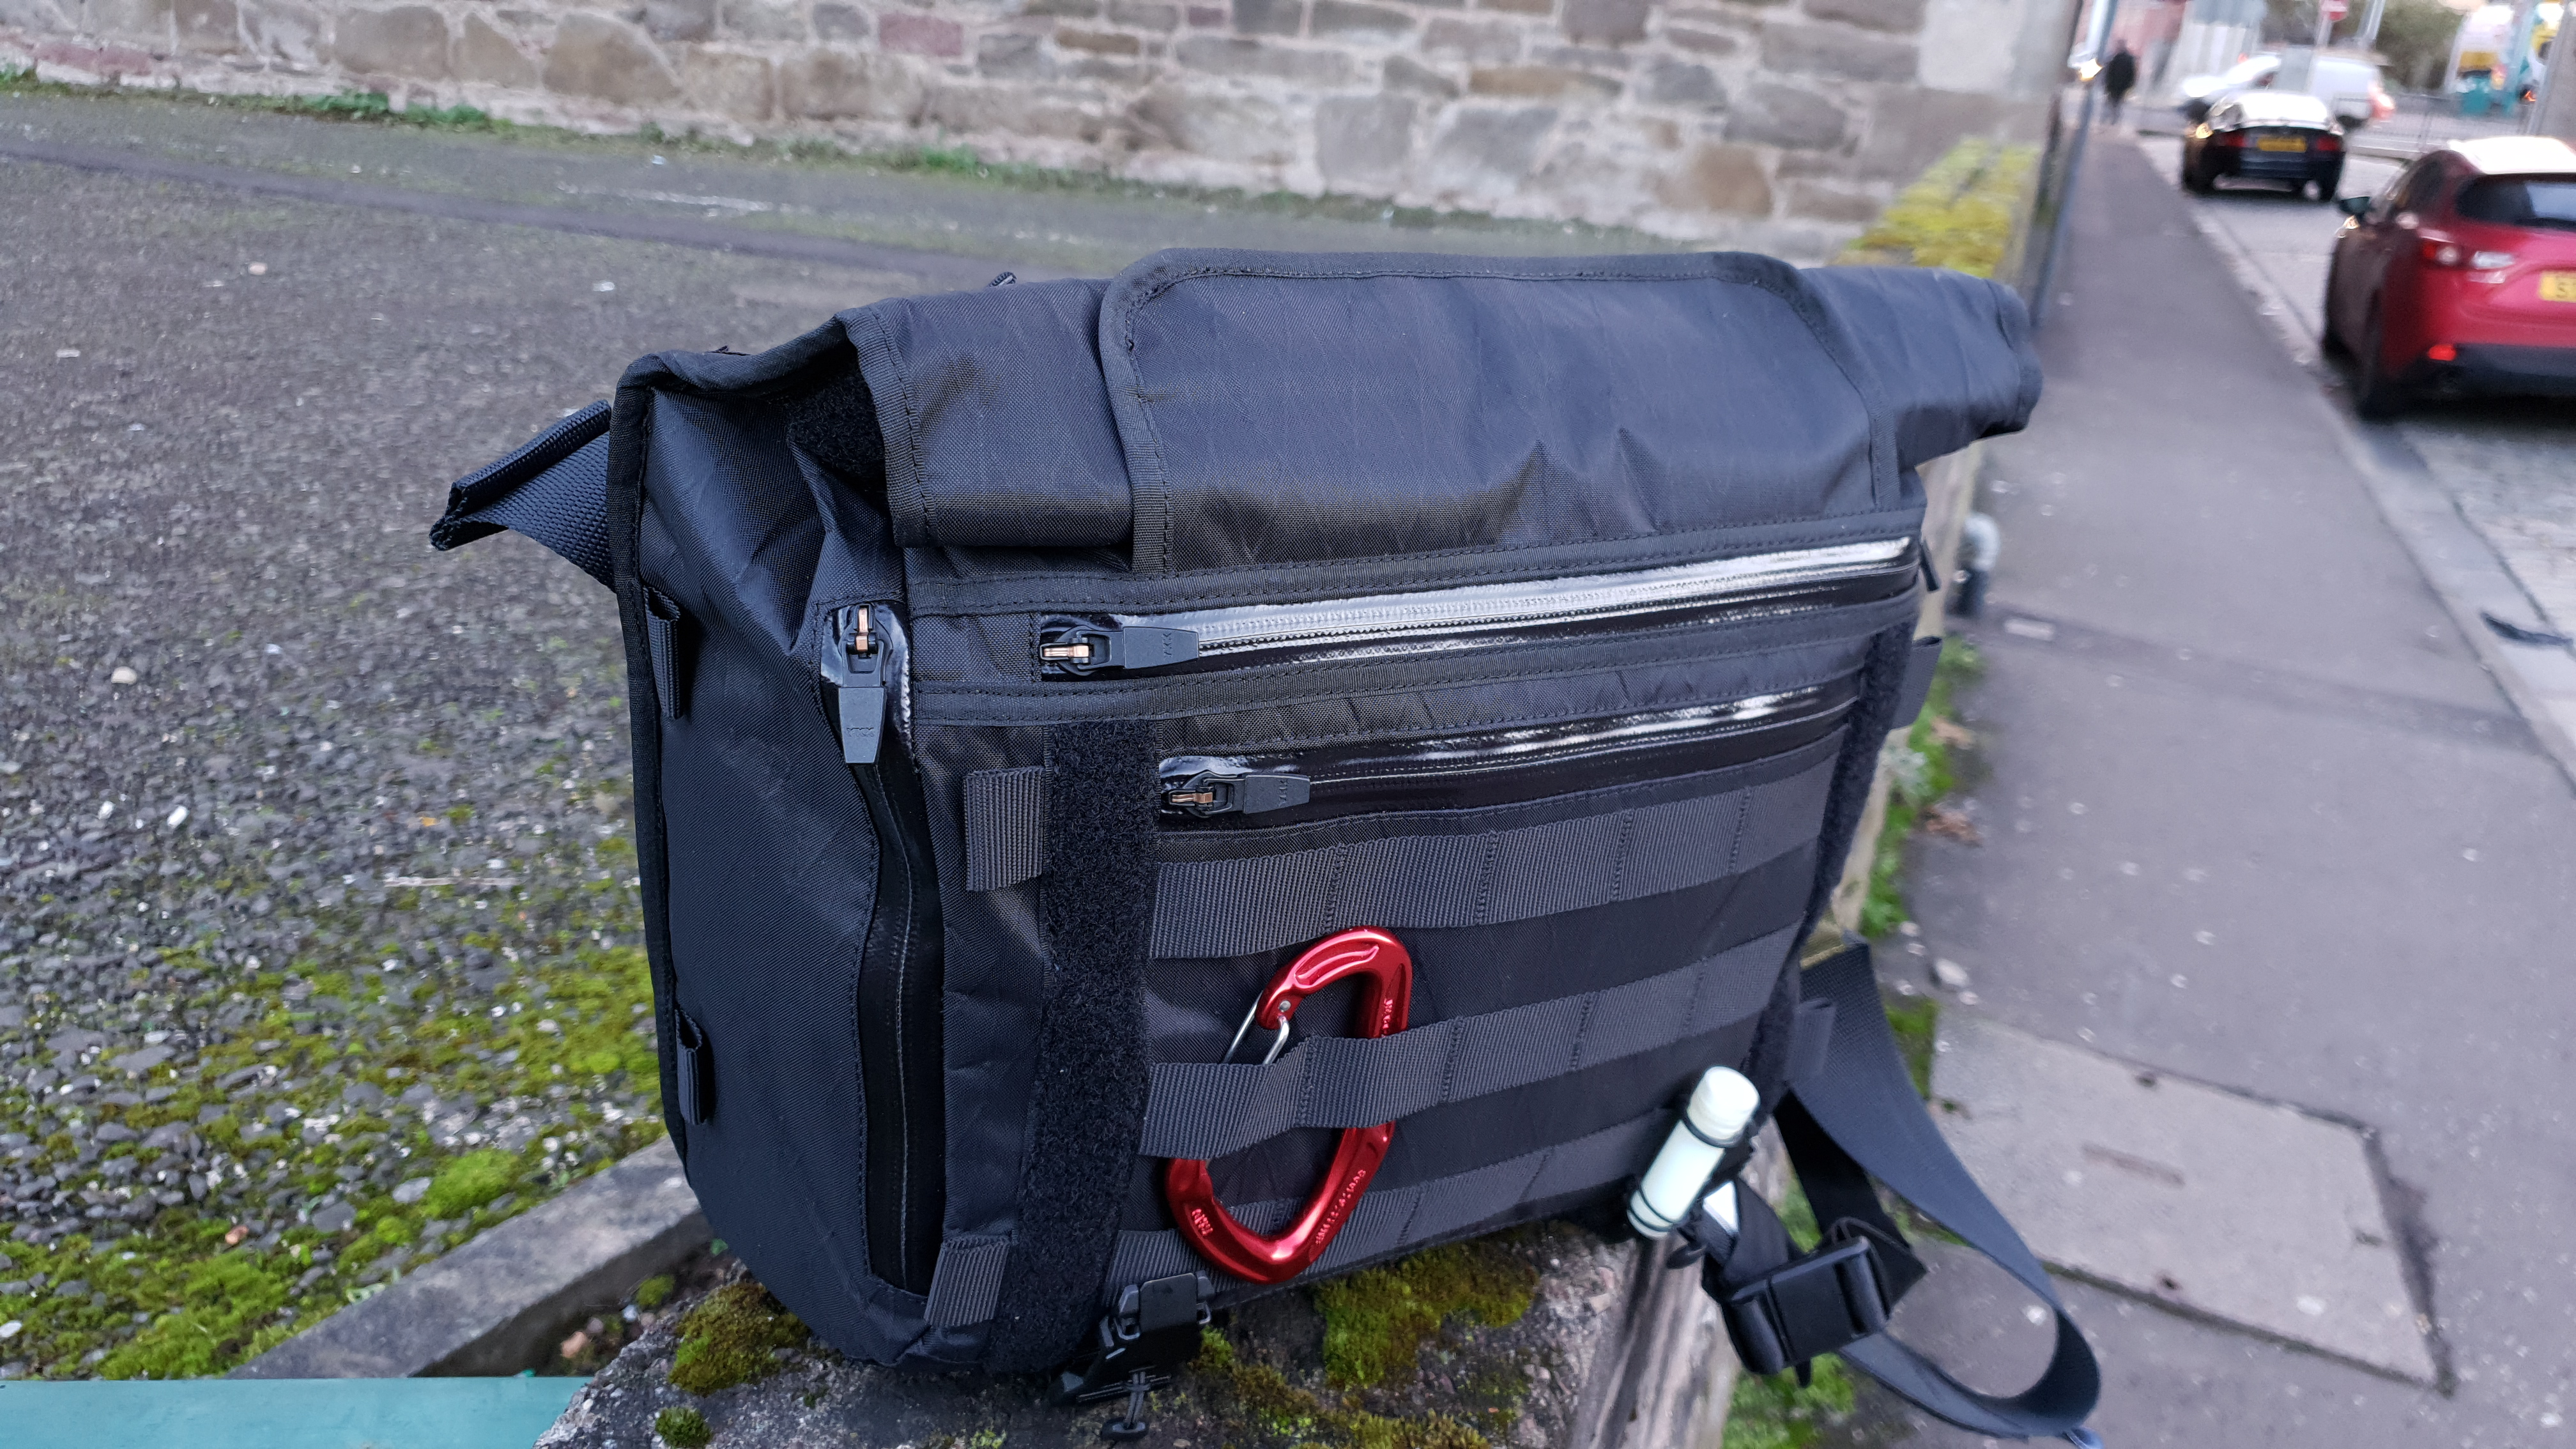 Orbit Gear R221 Messenger bag review rolltop feature amphibious closure system